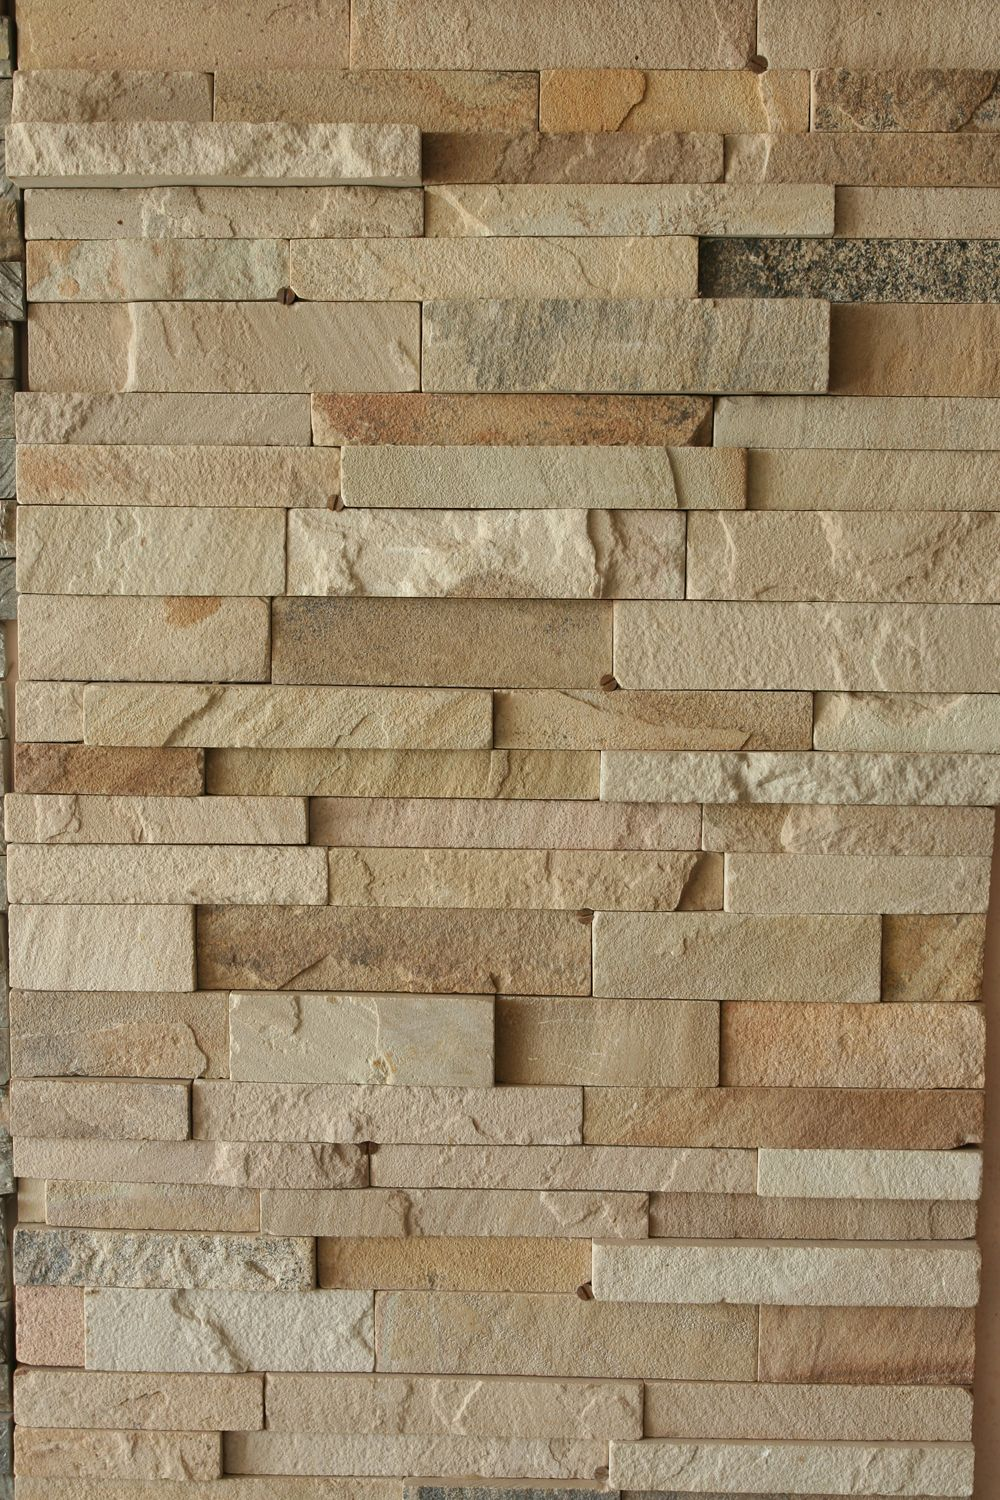 The Most Extravagant Wall Cladding Of Mint Sandstone Design By